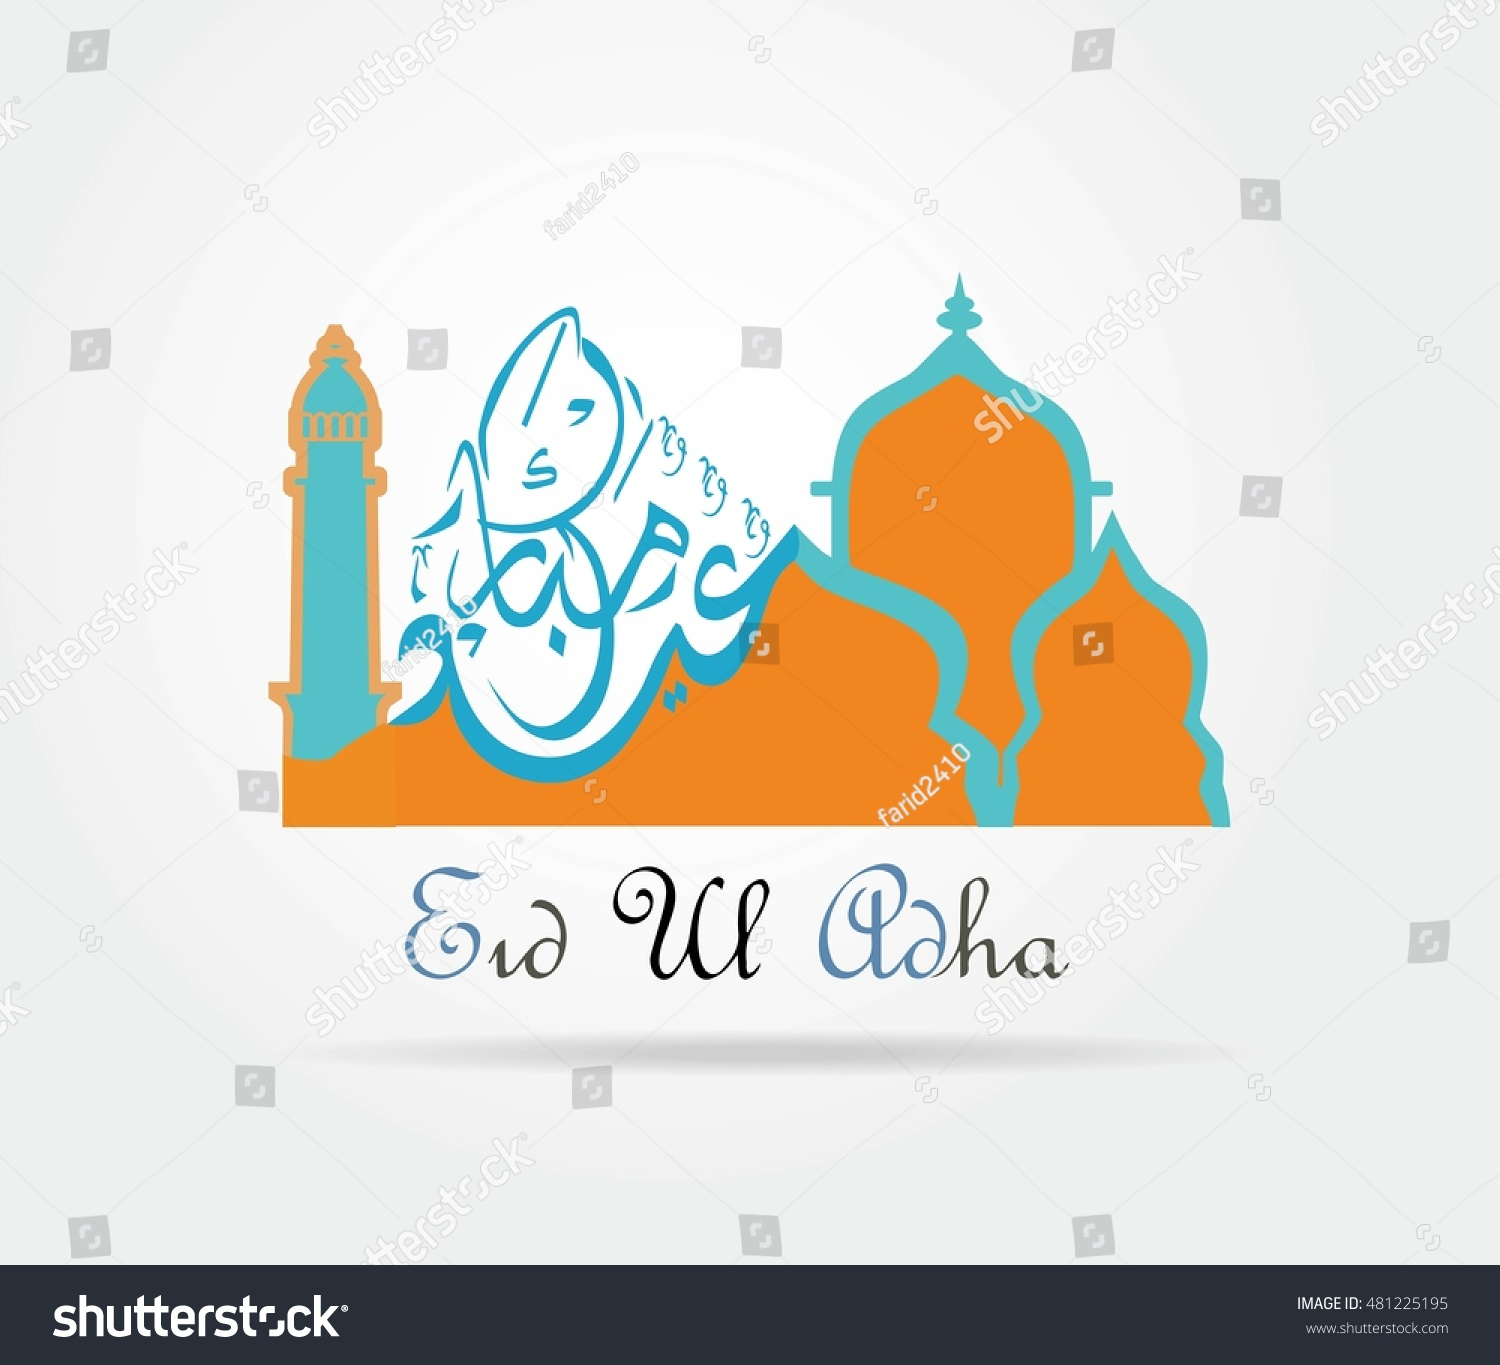 Vector eid mubarak beautiful greeting card stock vector 481225195 vector of eid mubarak beautiful greeting card with arabic calligraphy which means eid adha kristyandbryce Image collections